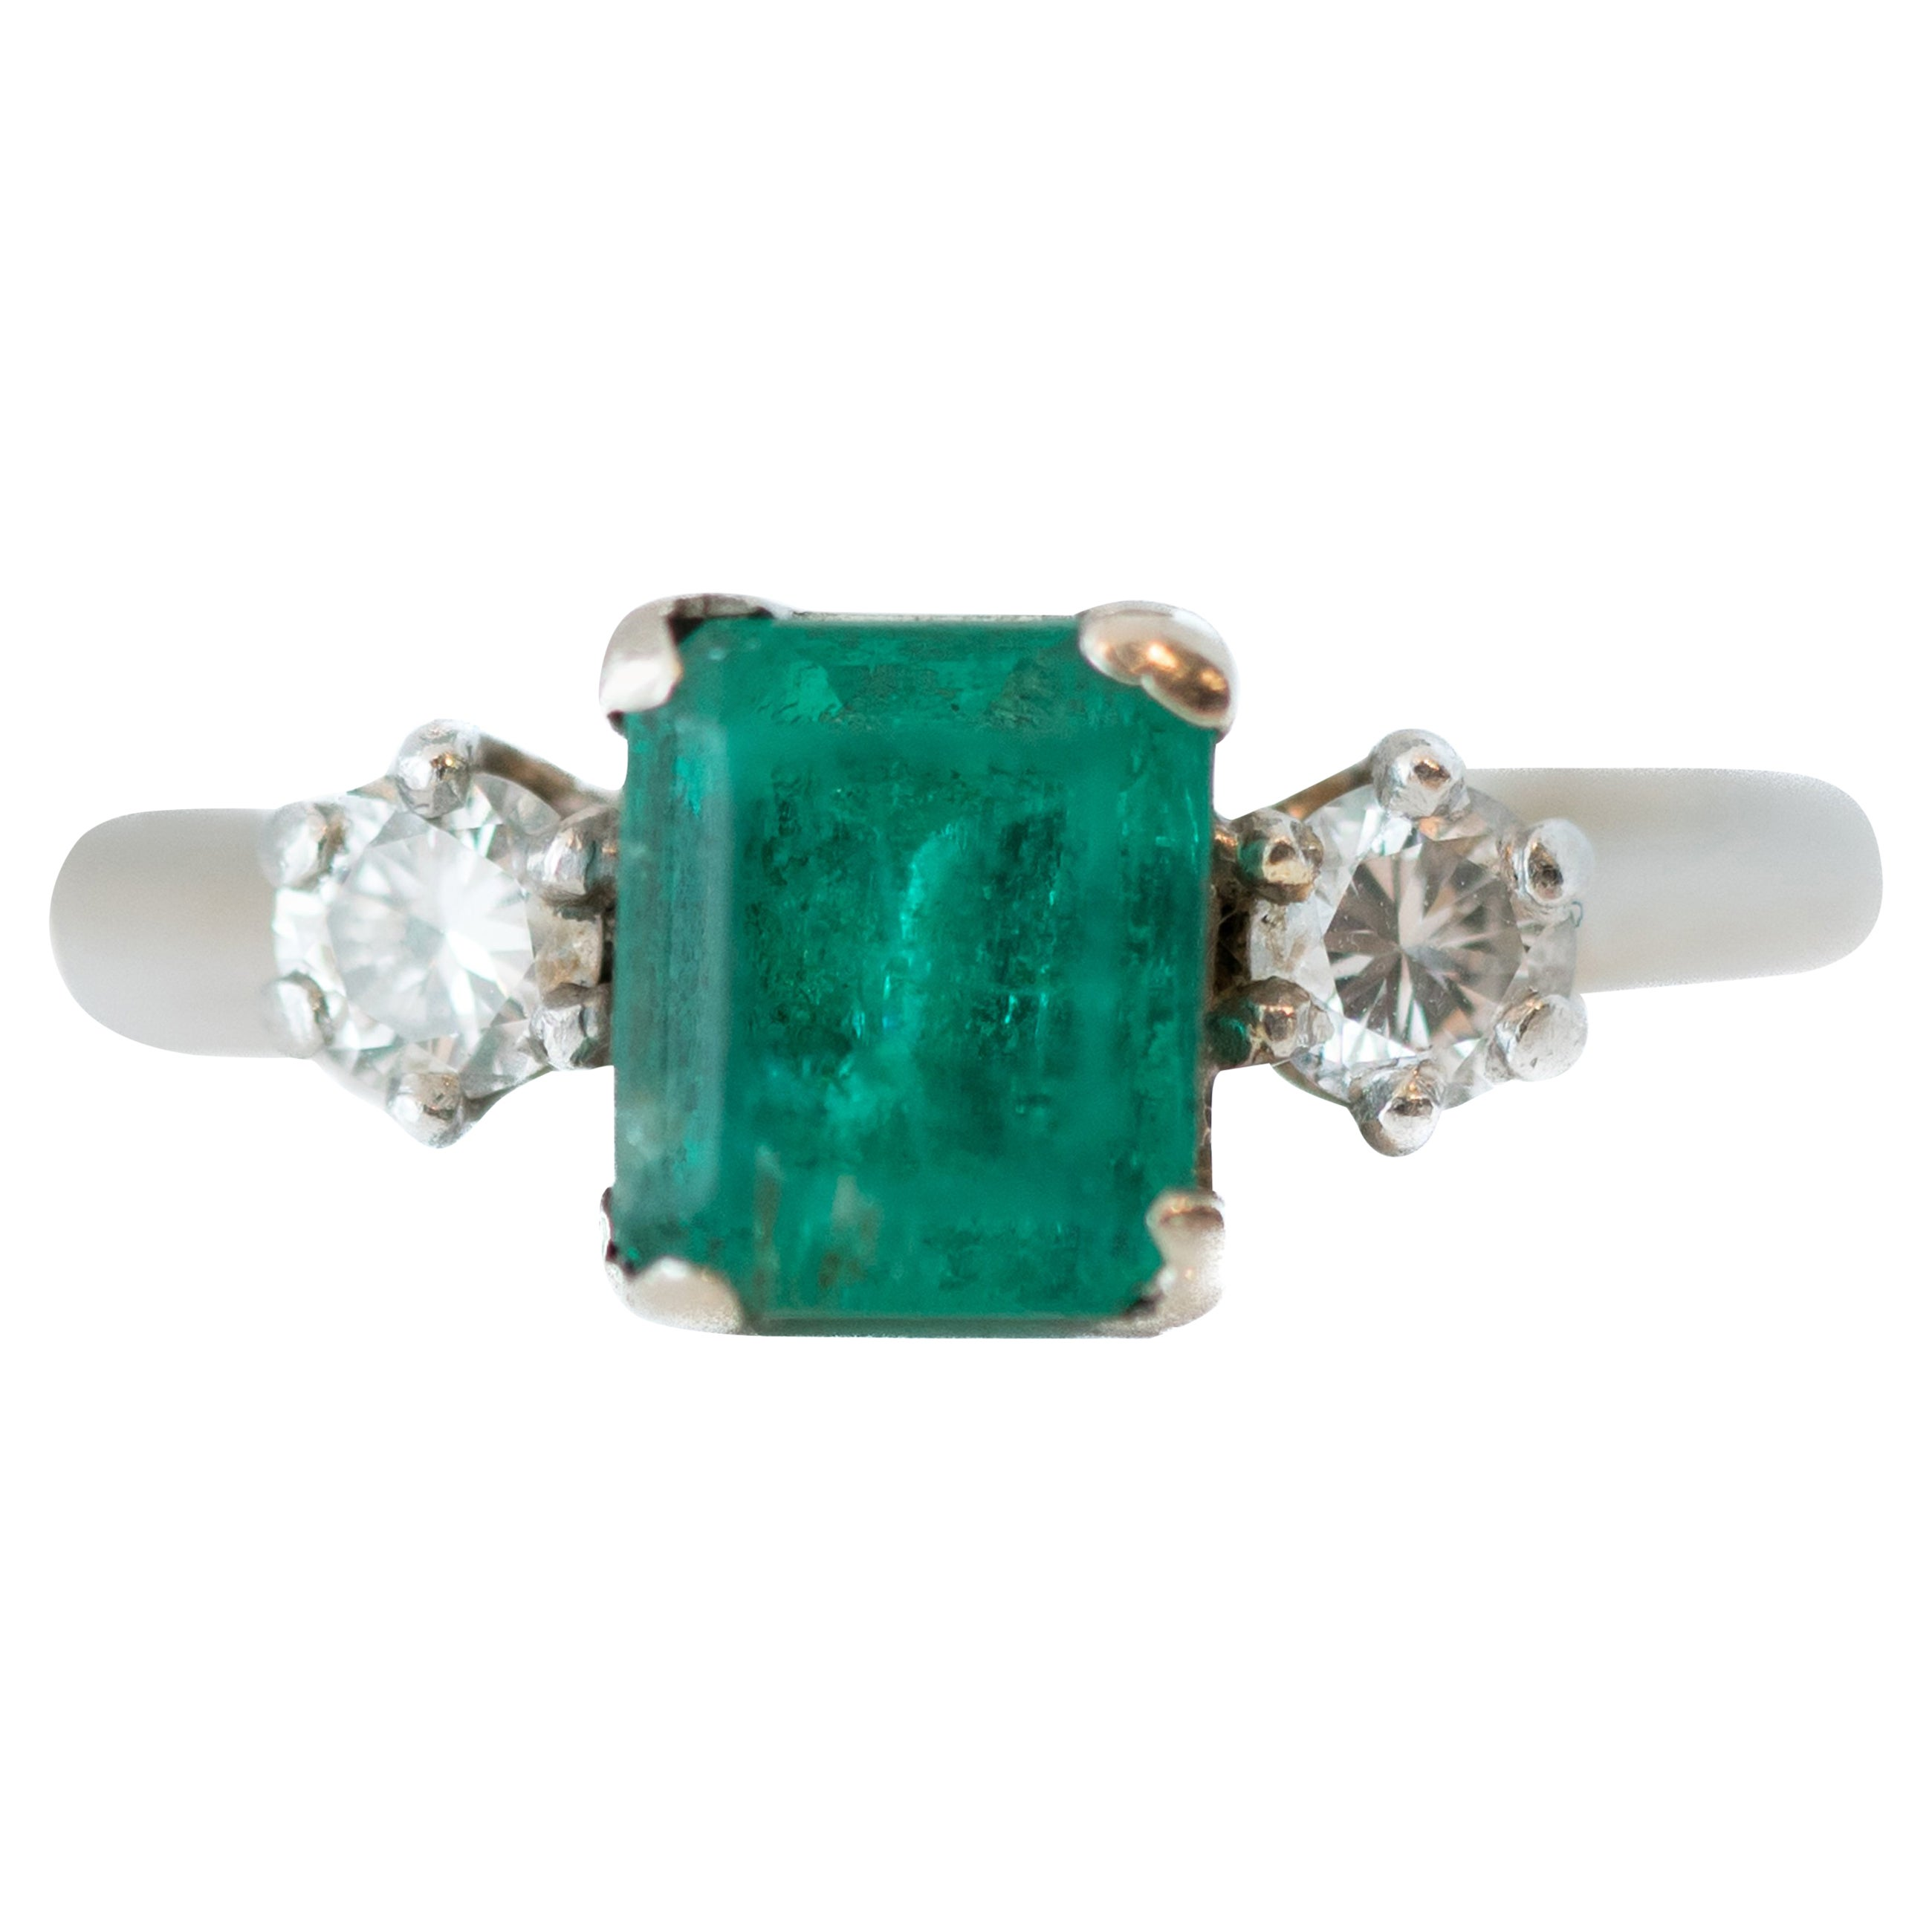 1950s 1 Carat Emerald and 0.20 Carat Diamond 14 Karat Gold Ring